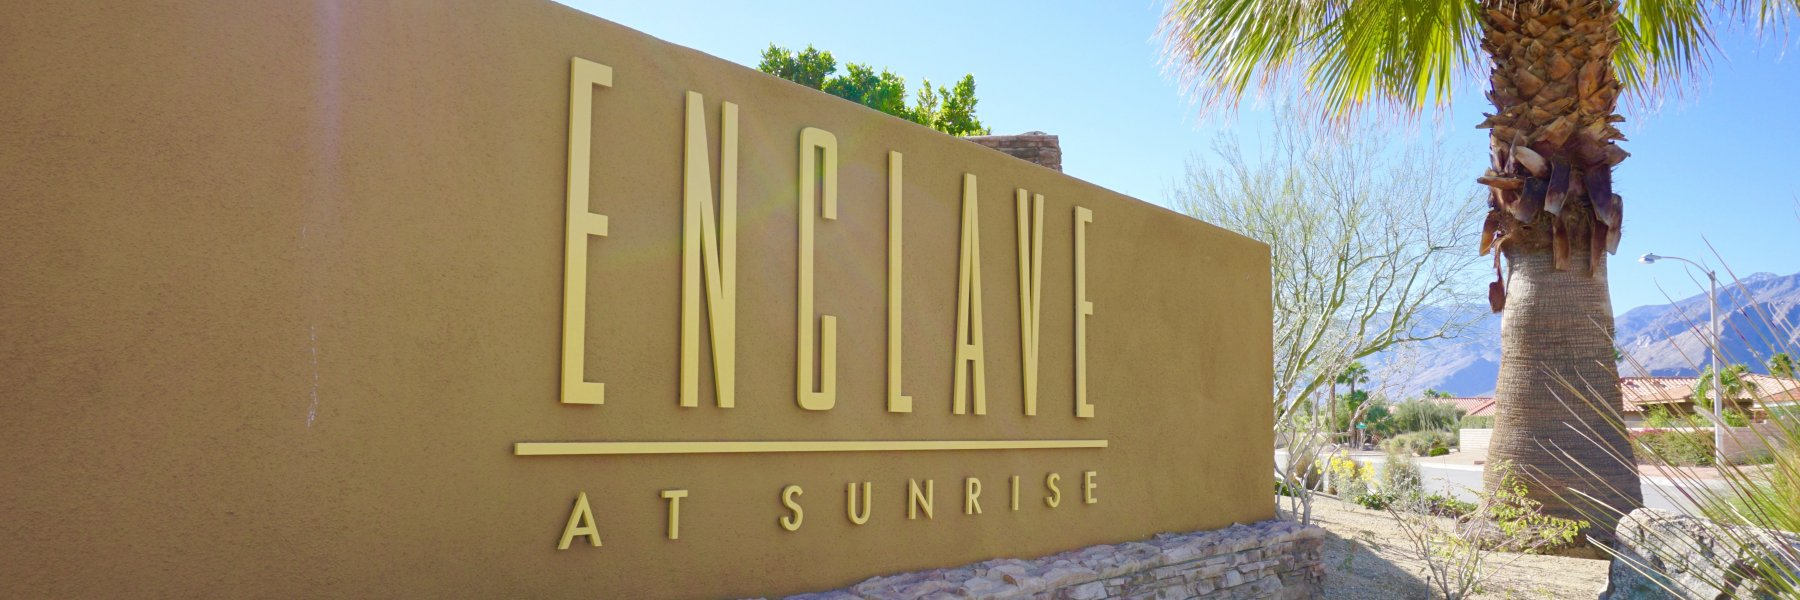 Enclave at Sunrise is a community of homes in Palm Springs California